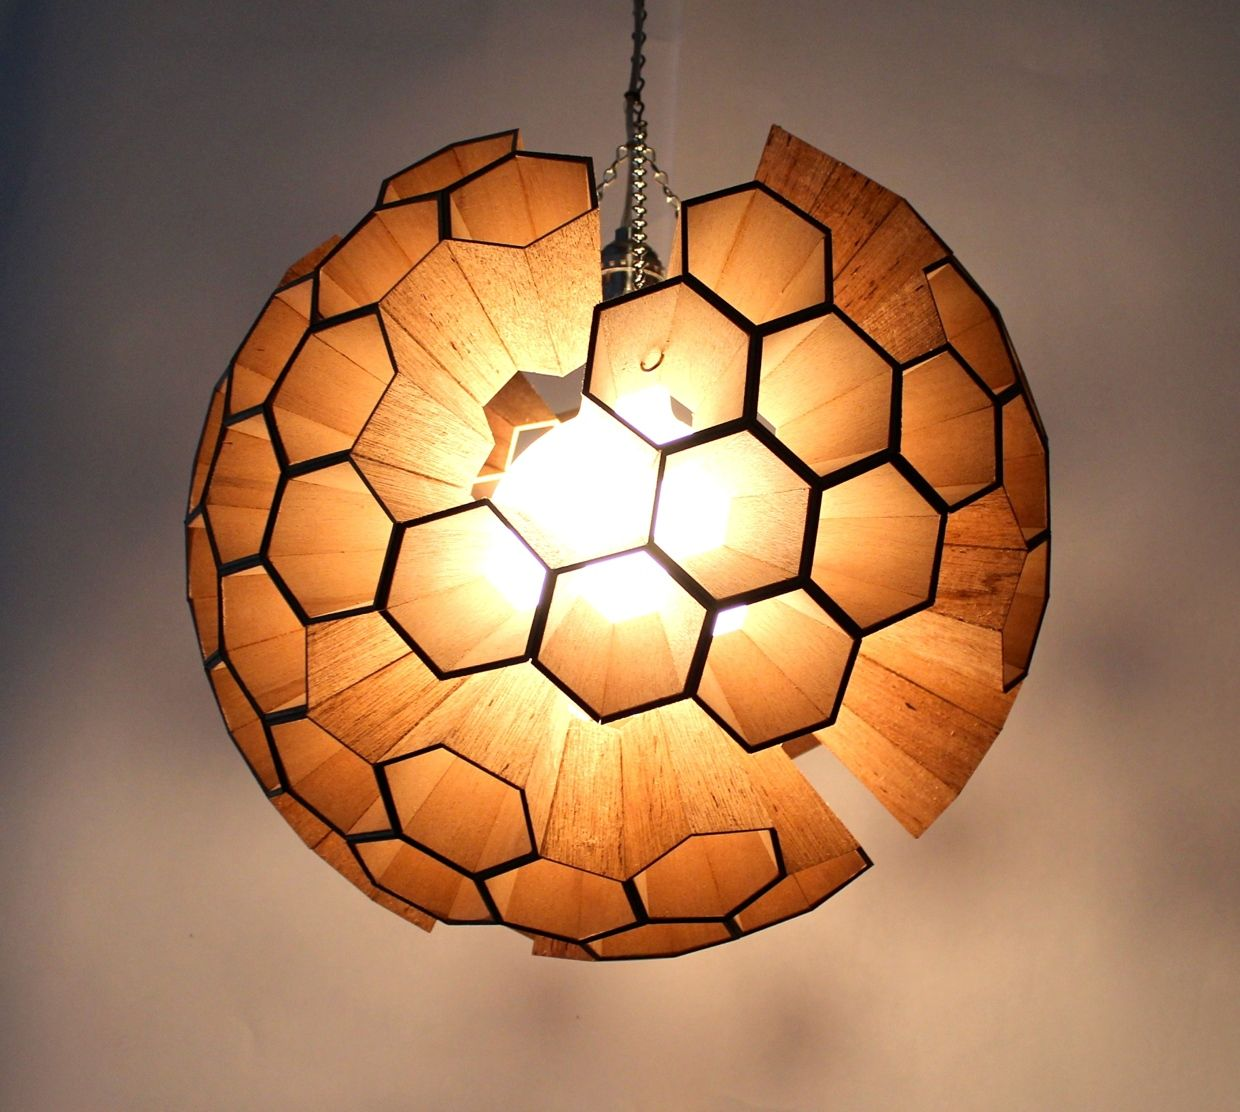 Lamp Sphere Of Hexagonal Cells By Margaret Barry Lamp Lamp Decor Lamp Design